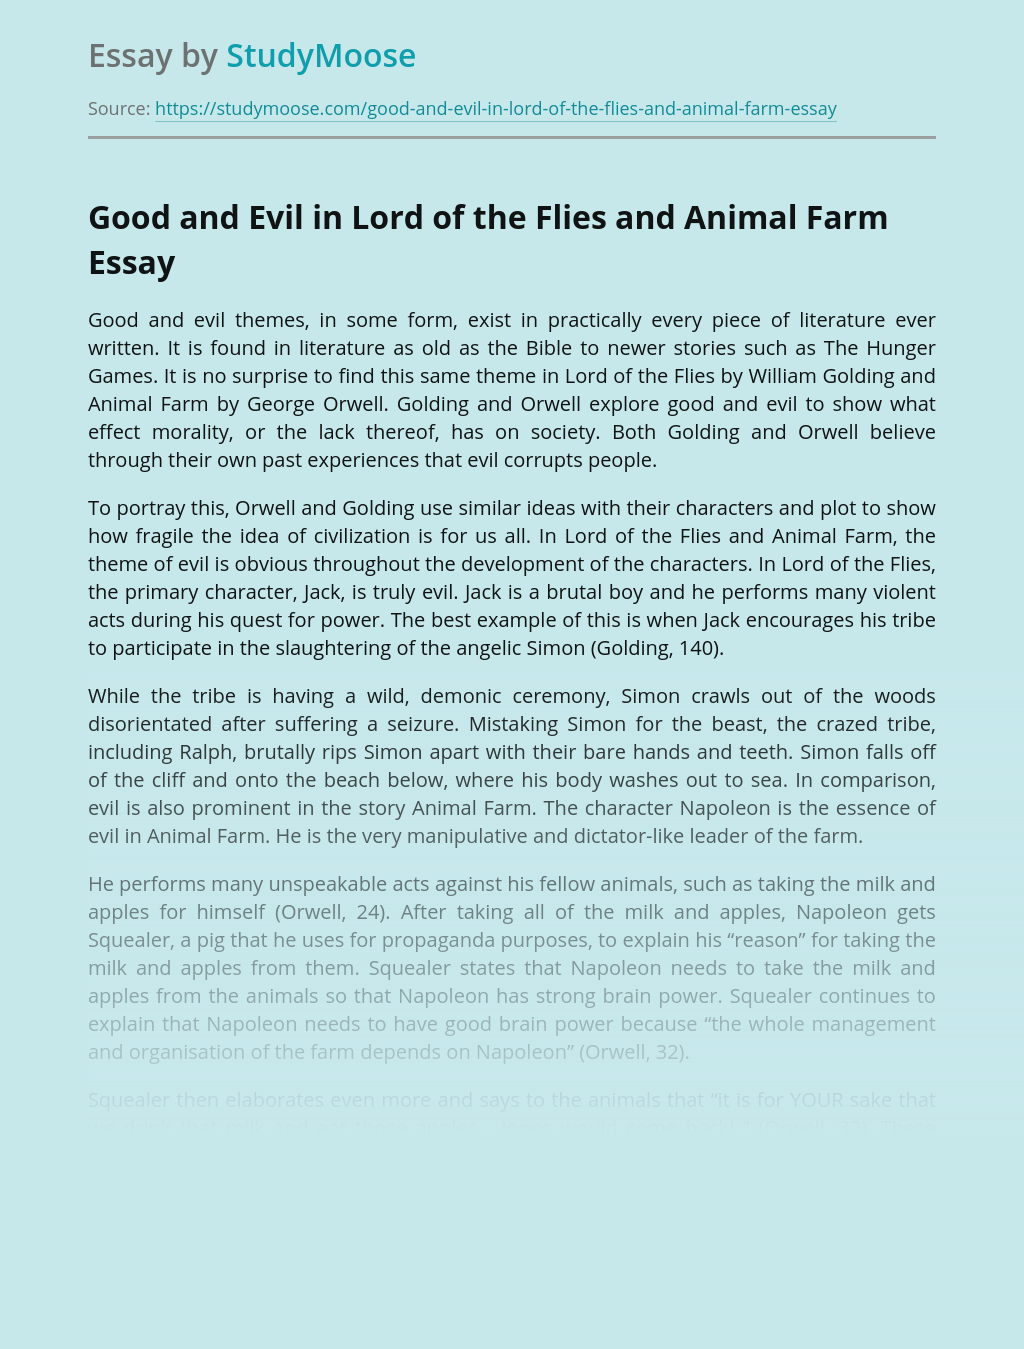 Good and Evil in Lord of the Flies and Animal Farm